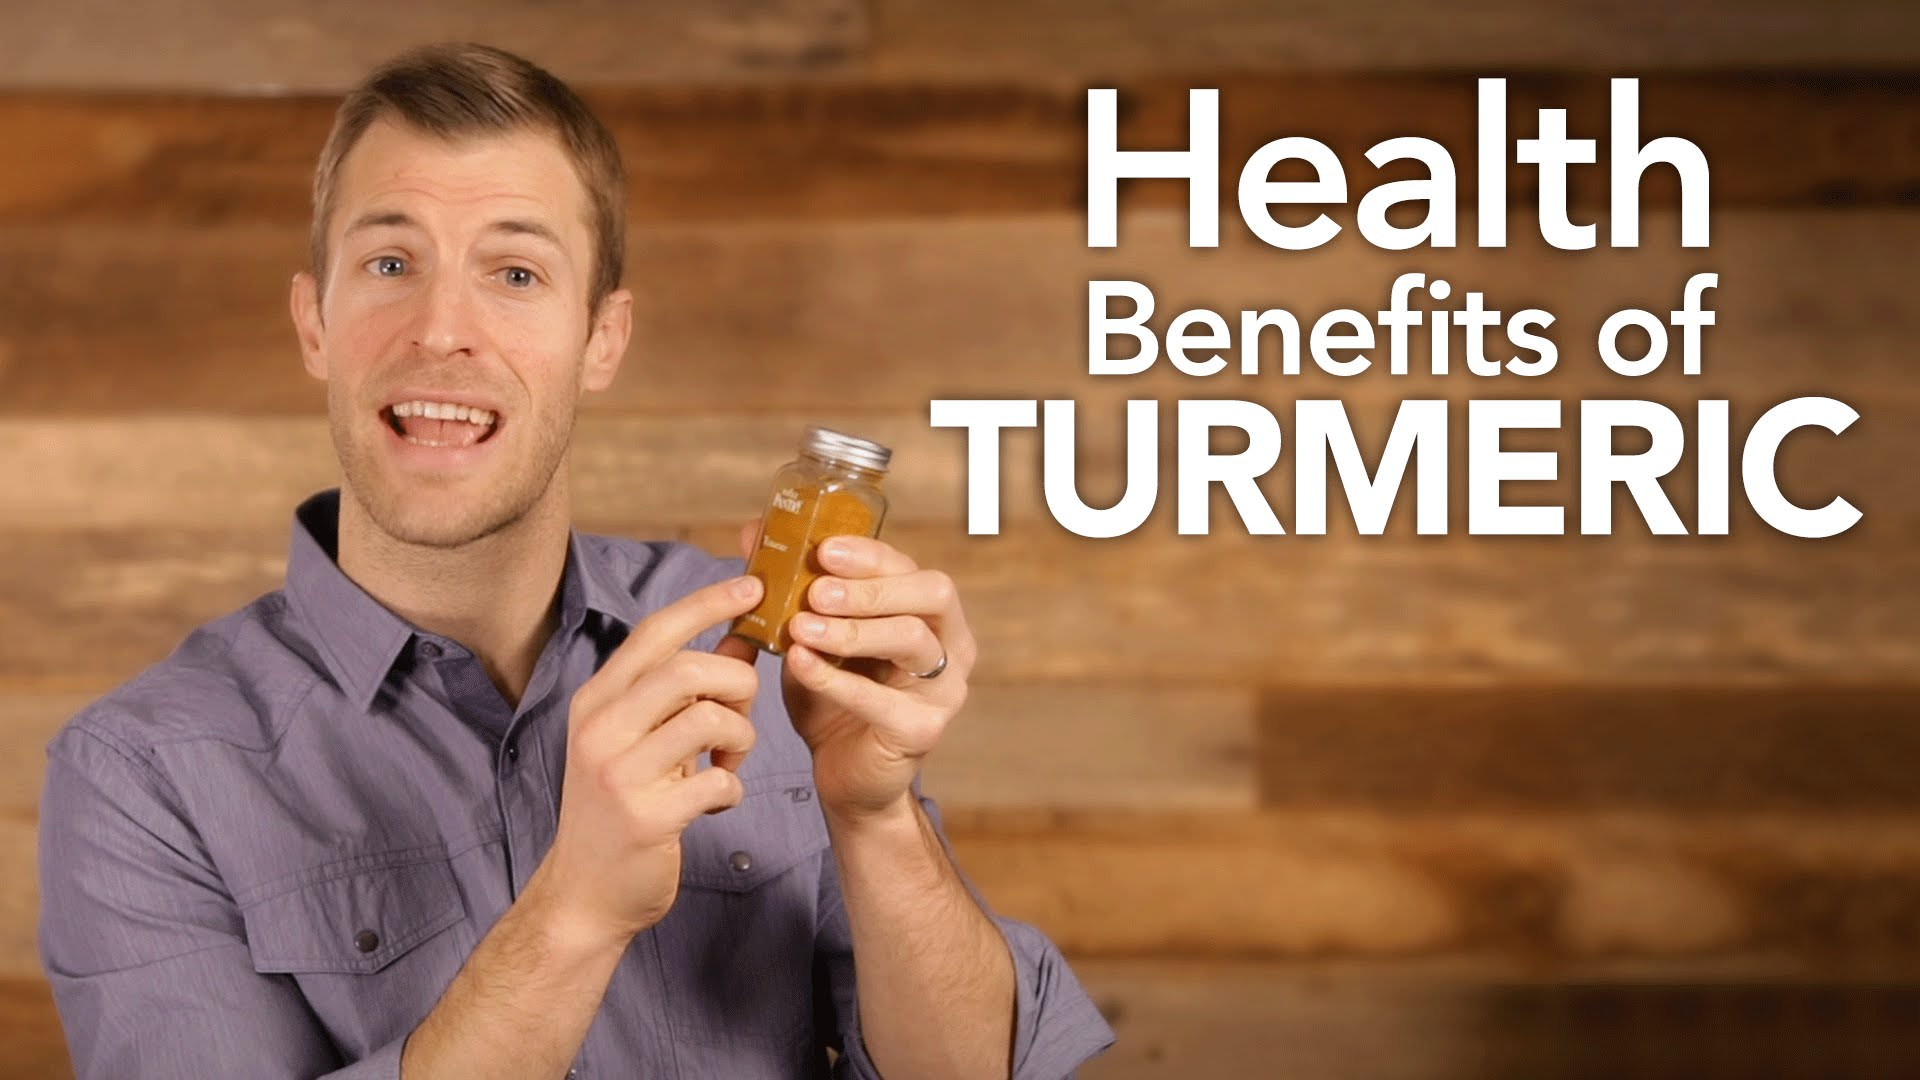 Dr Axe Recommends Turmeric